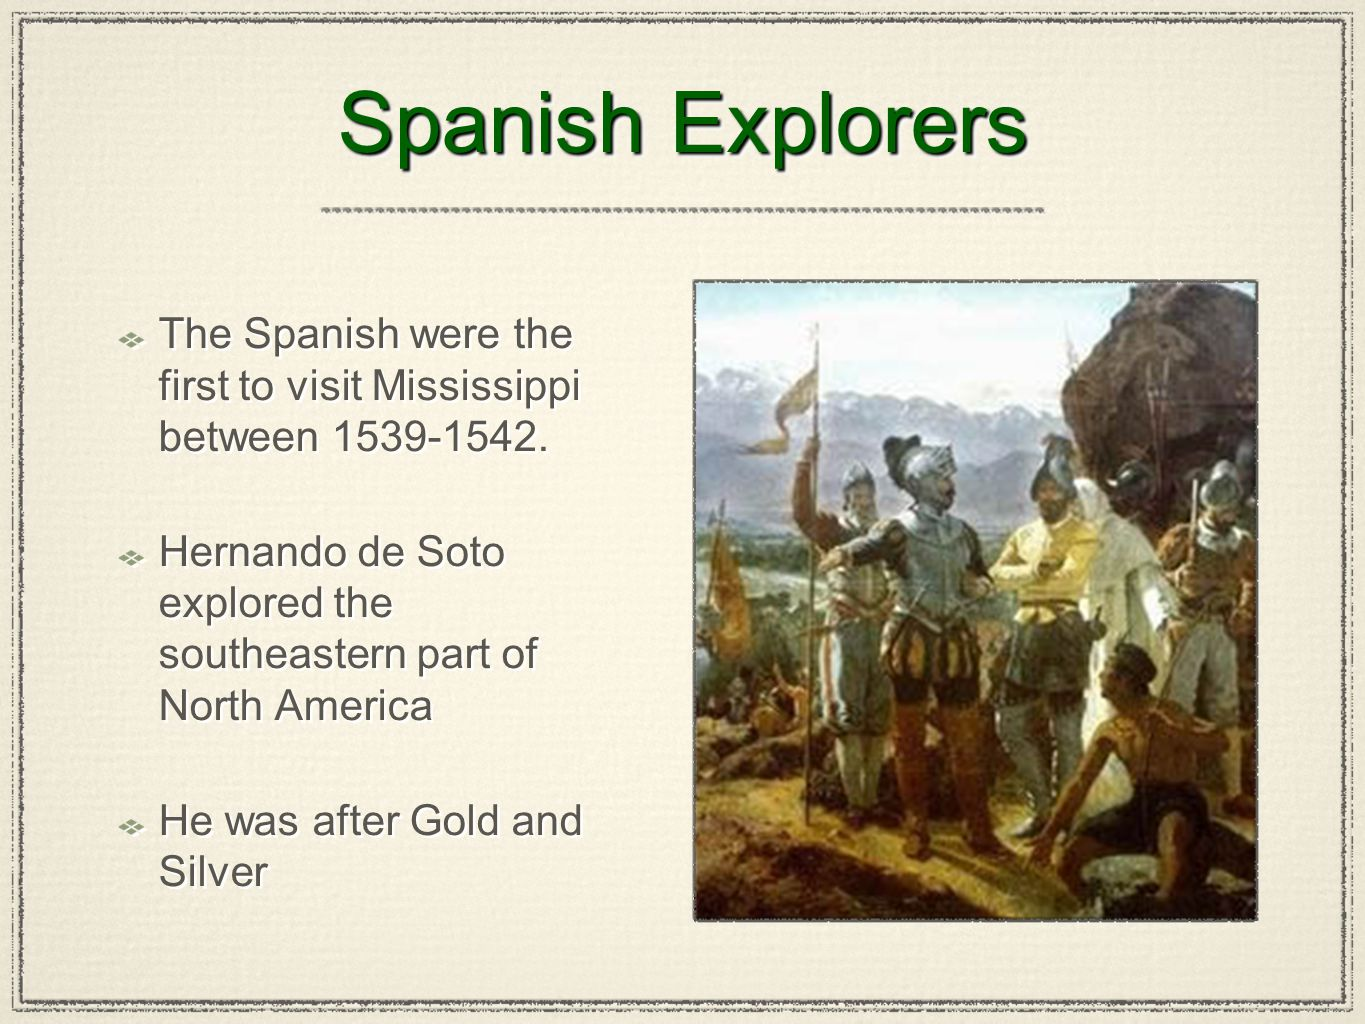 Spanish Explorers The Spanish were the first to visit Mississippi between 1539-1542. Hernando de Soto explored the southeastern part of North America